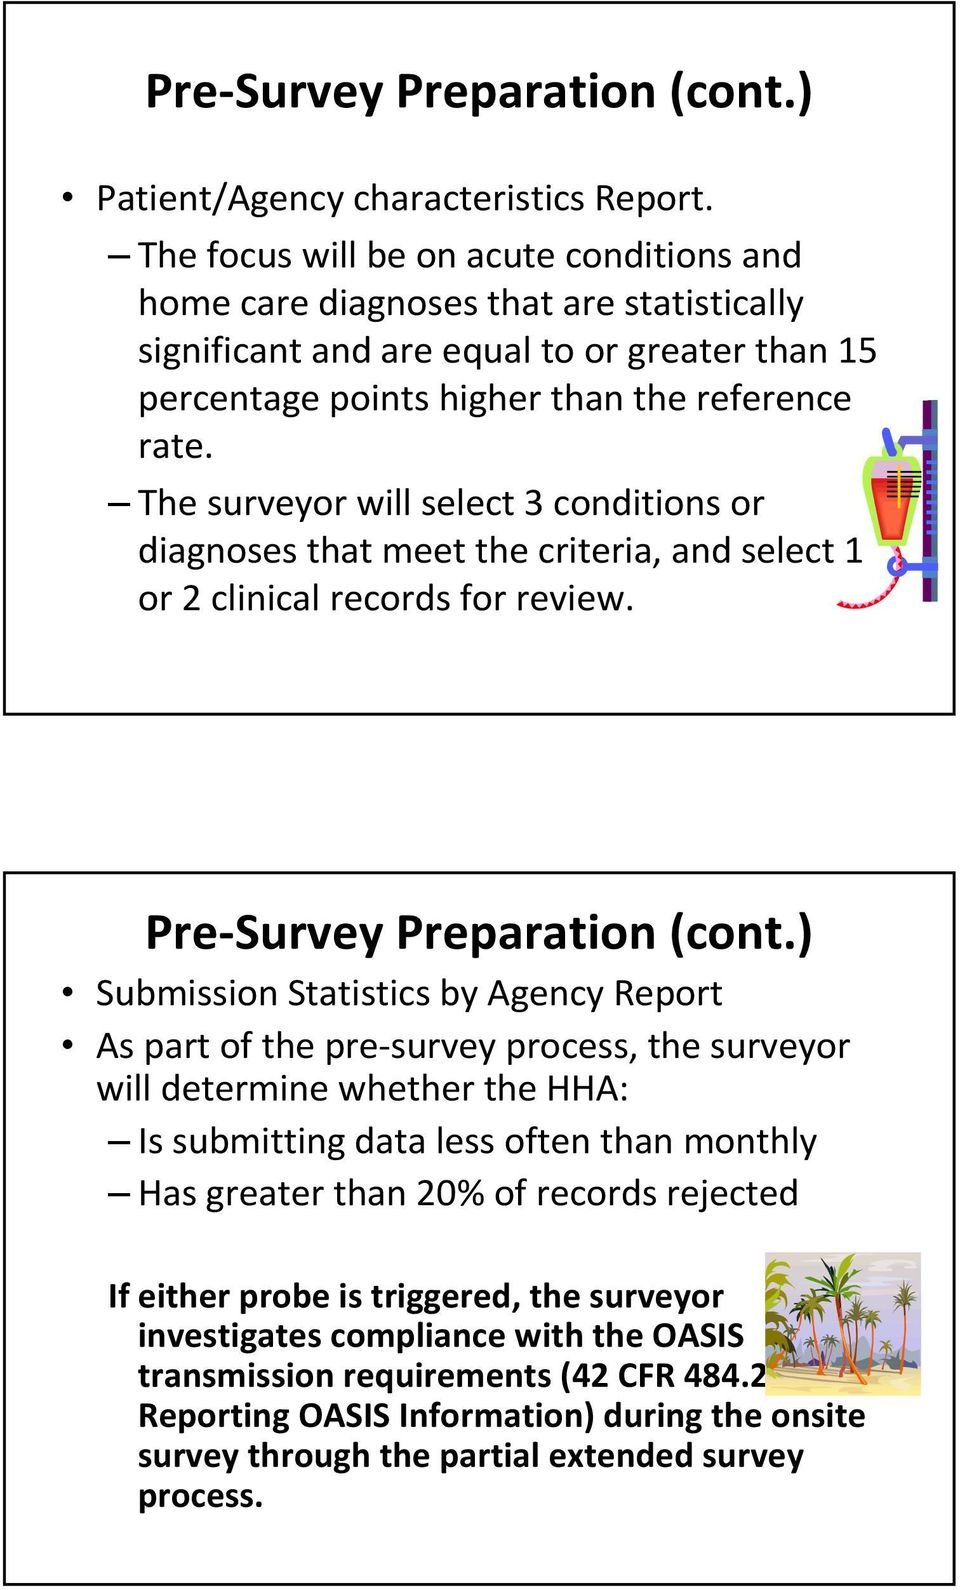 The surveyor will select 3 conditions or diagnoses that meet the criteria, and select 1 or 2 clinical records for review. Pre Survey Preparation (cont.